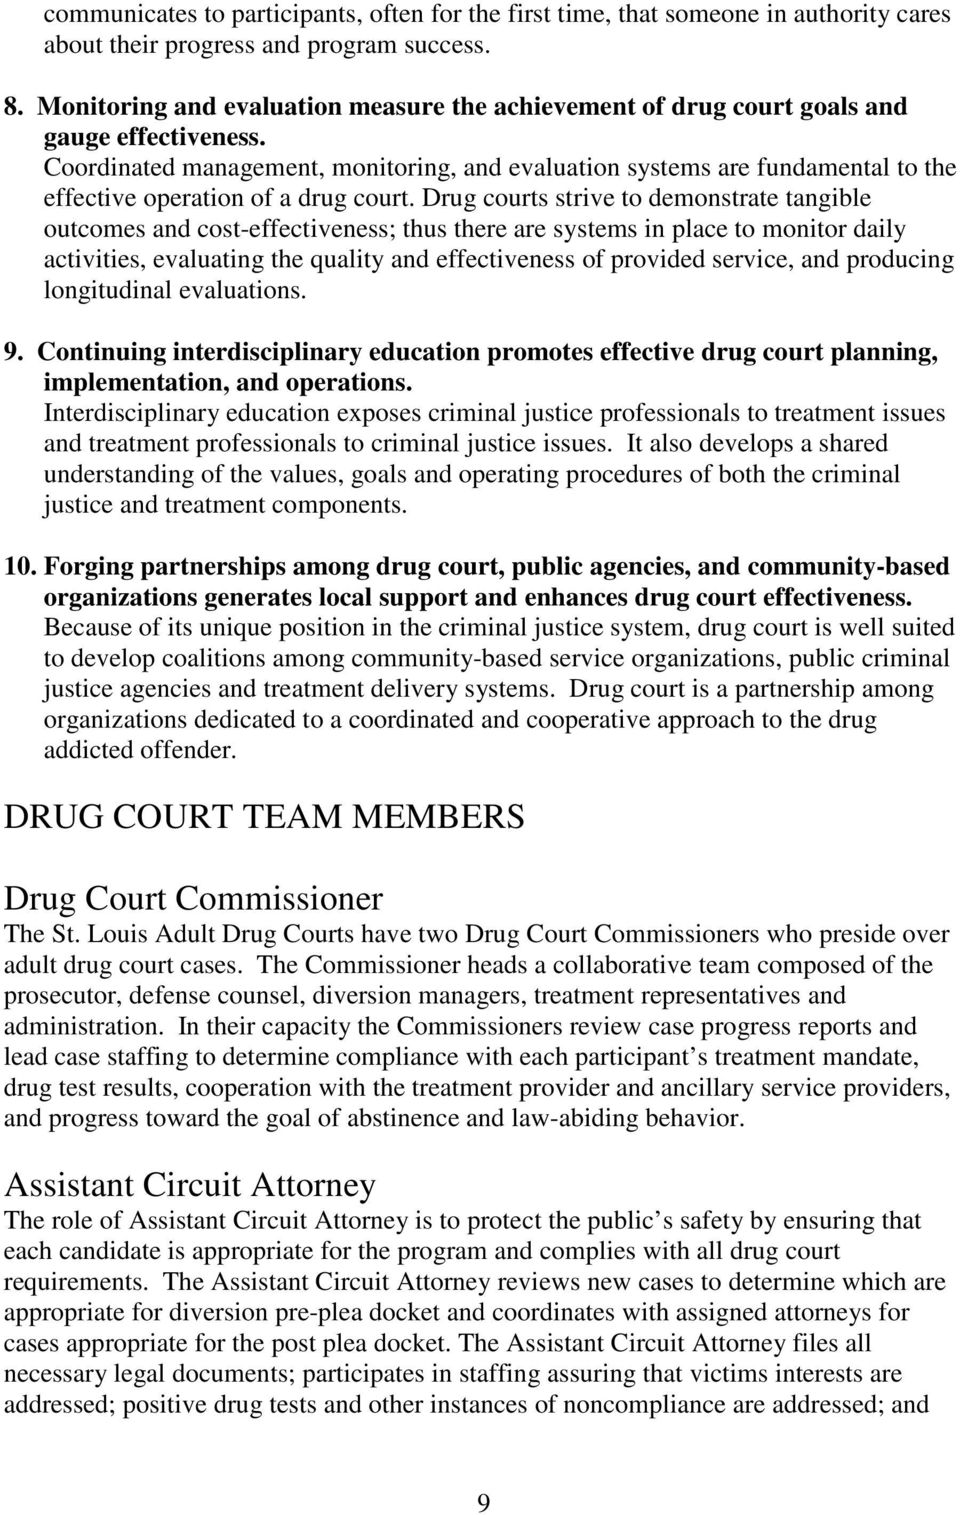 Coordinated management, monitoring, and evaluation systems are fundamental to the effective operation of a drug court.